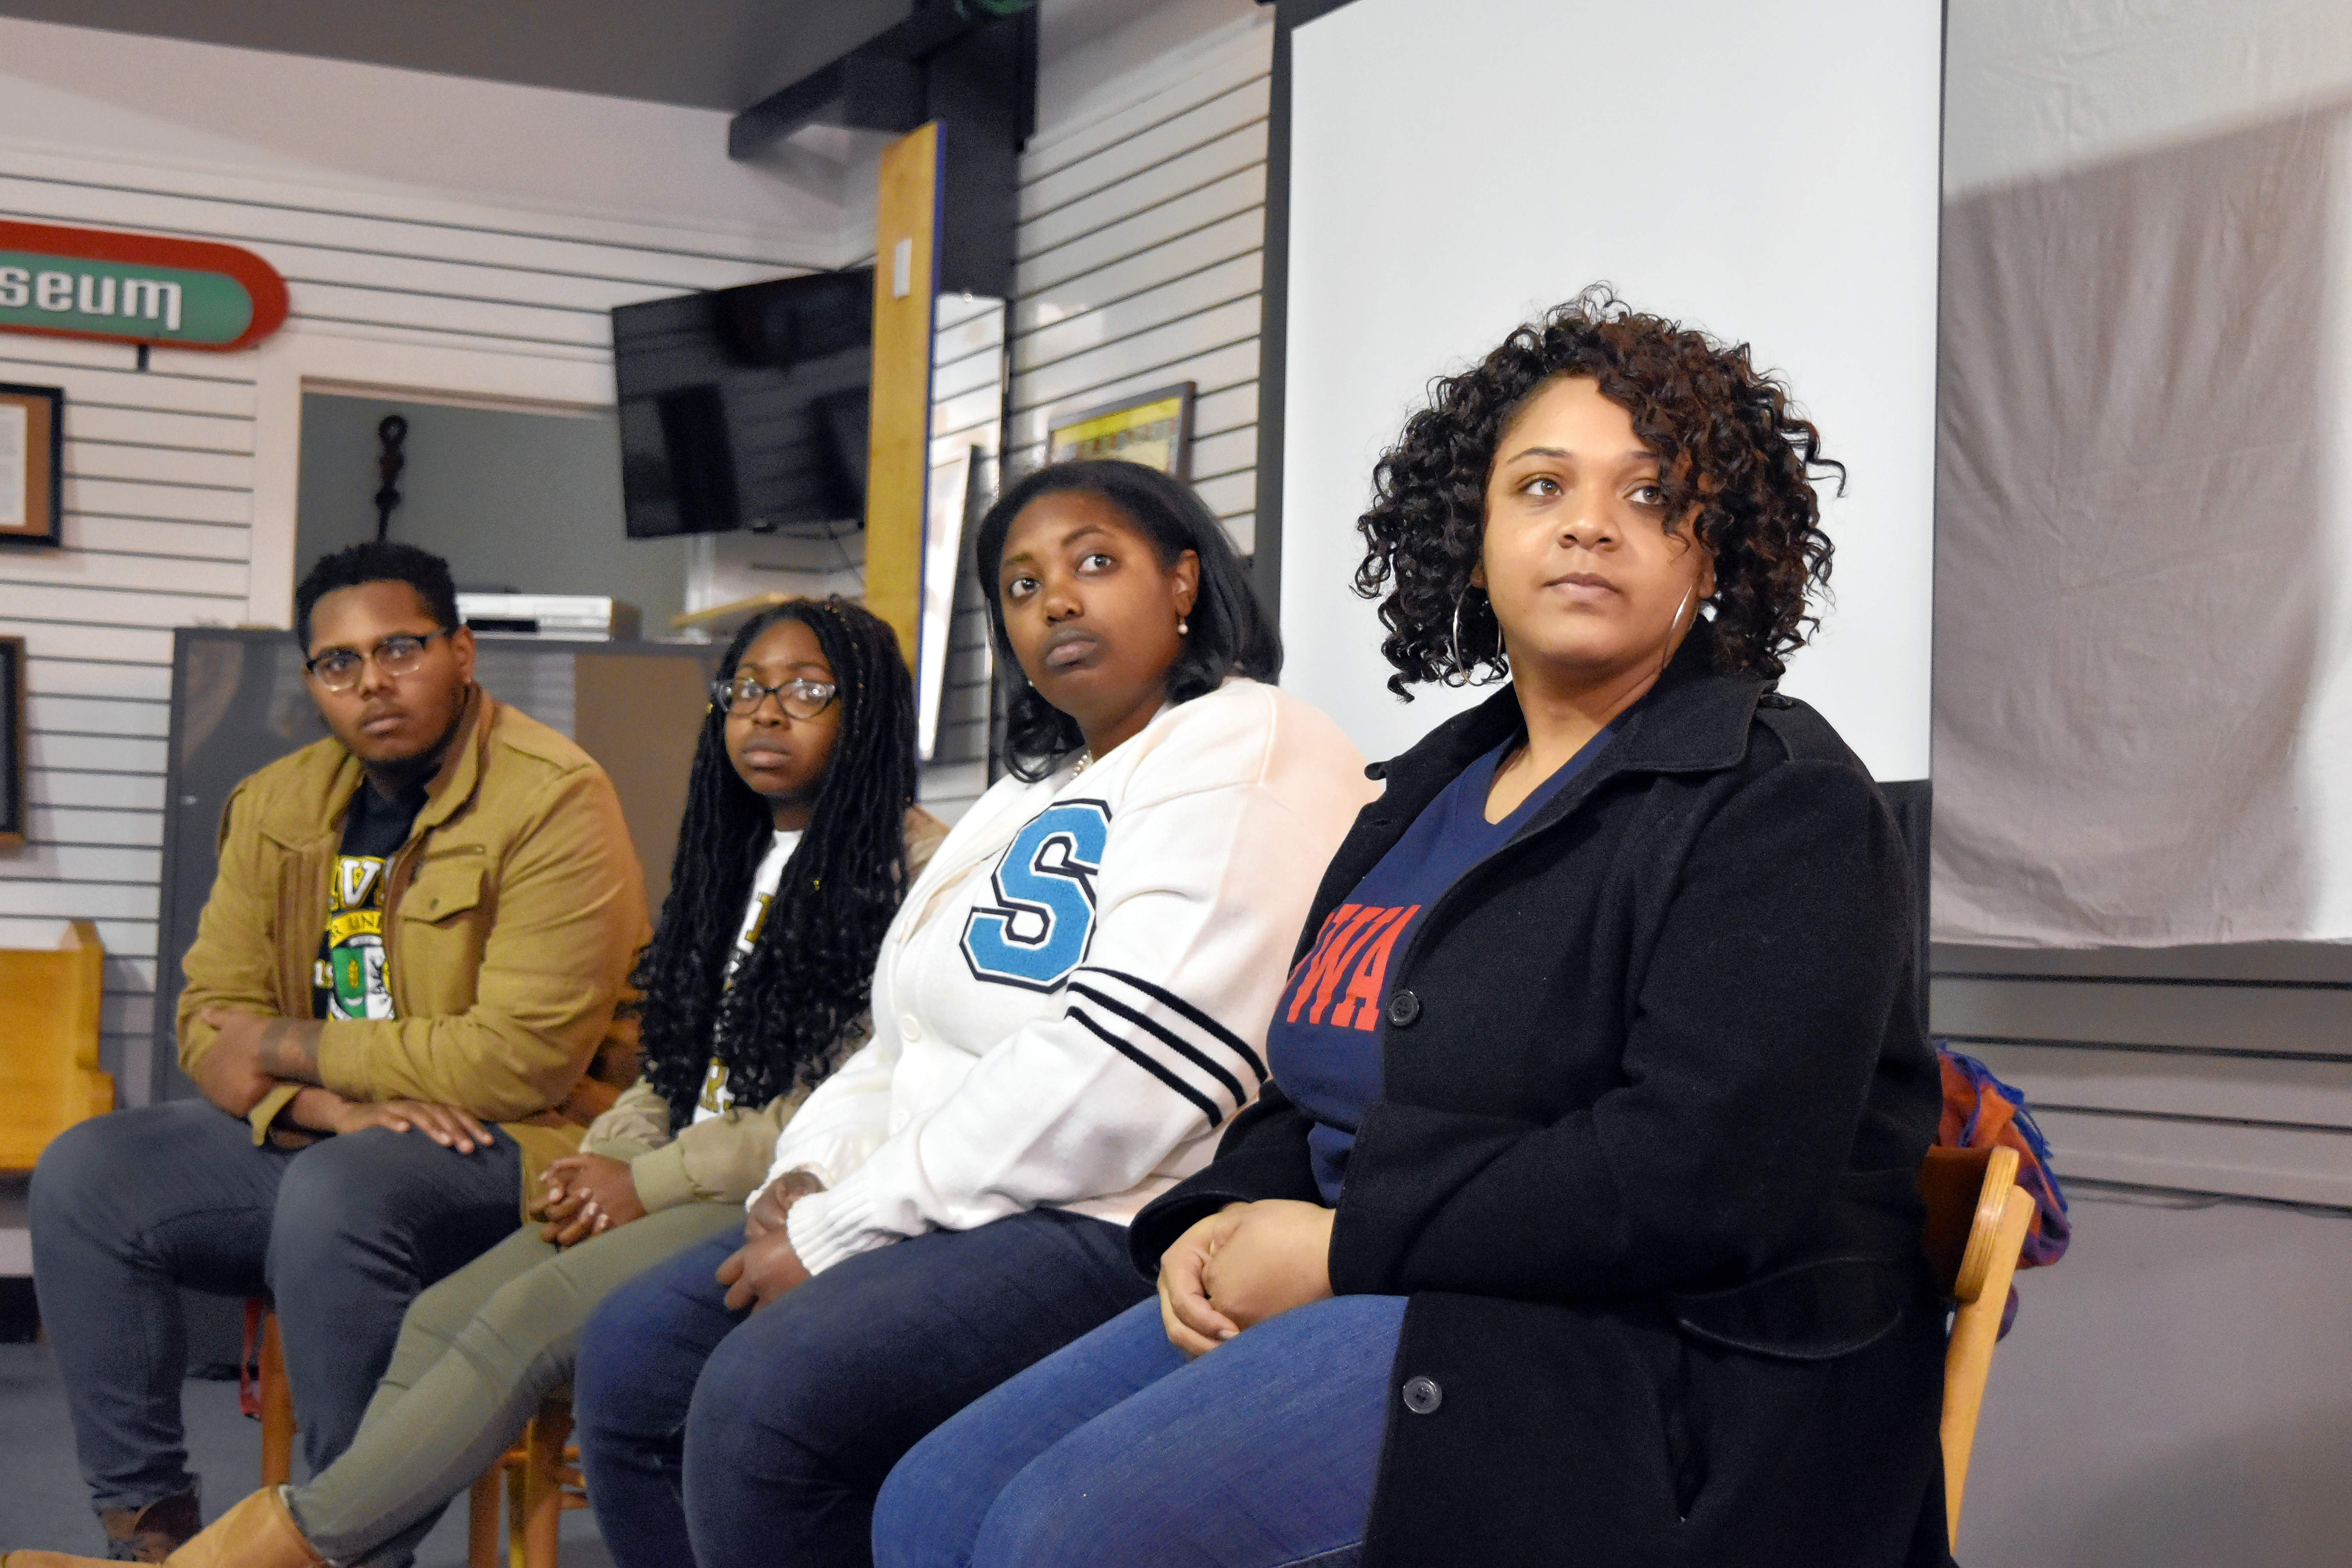 """Pictured are, from left, Kendale Watson (Xavier University of Louisiana), Cheron Perkins (Xavier University of Louisiana), Jasmine Bryant (Spelman College) and Stephanie Wooten (Howard University) as they listen to moderator Dr. Pamela Smoot (not pictured) during a panel discussion after a screening of the film """"Tell Them We Are Rising: The Story of Black Colleges and Universities"""" on Thursday at University Mall. The four all attended historically black colleges and universities (HBCUs)."""